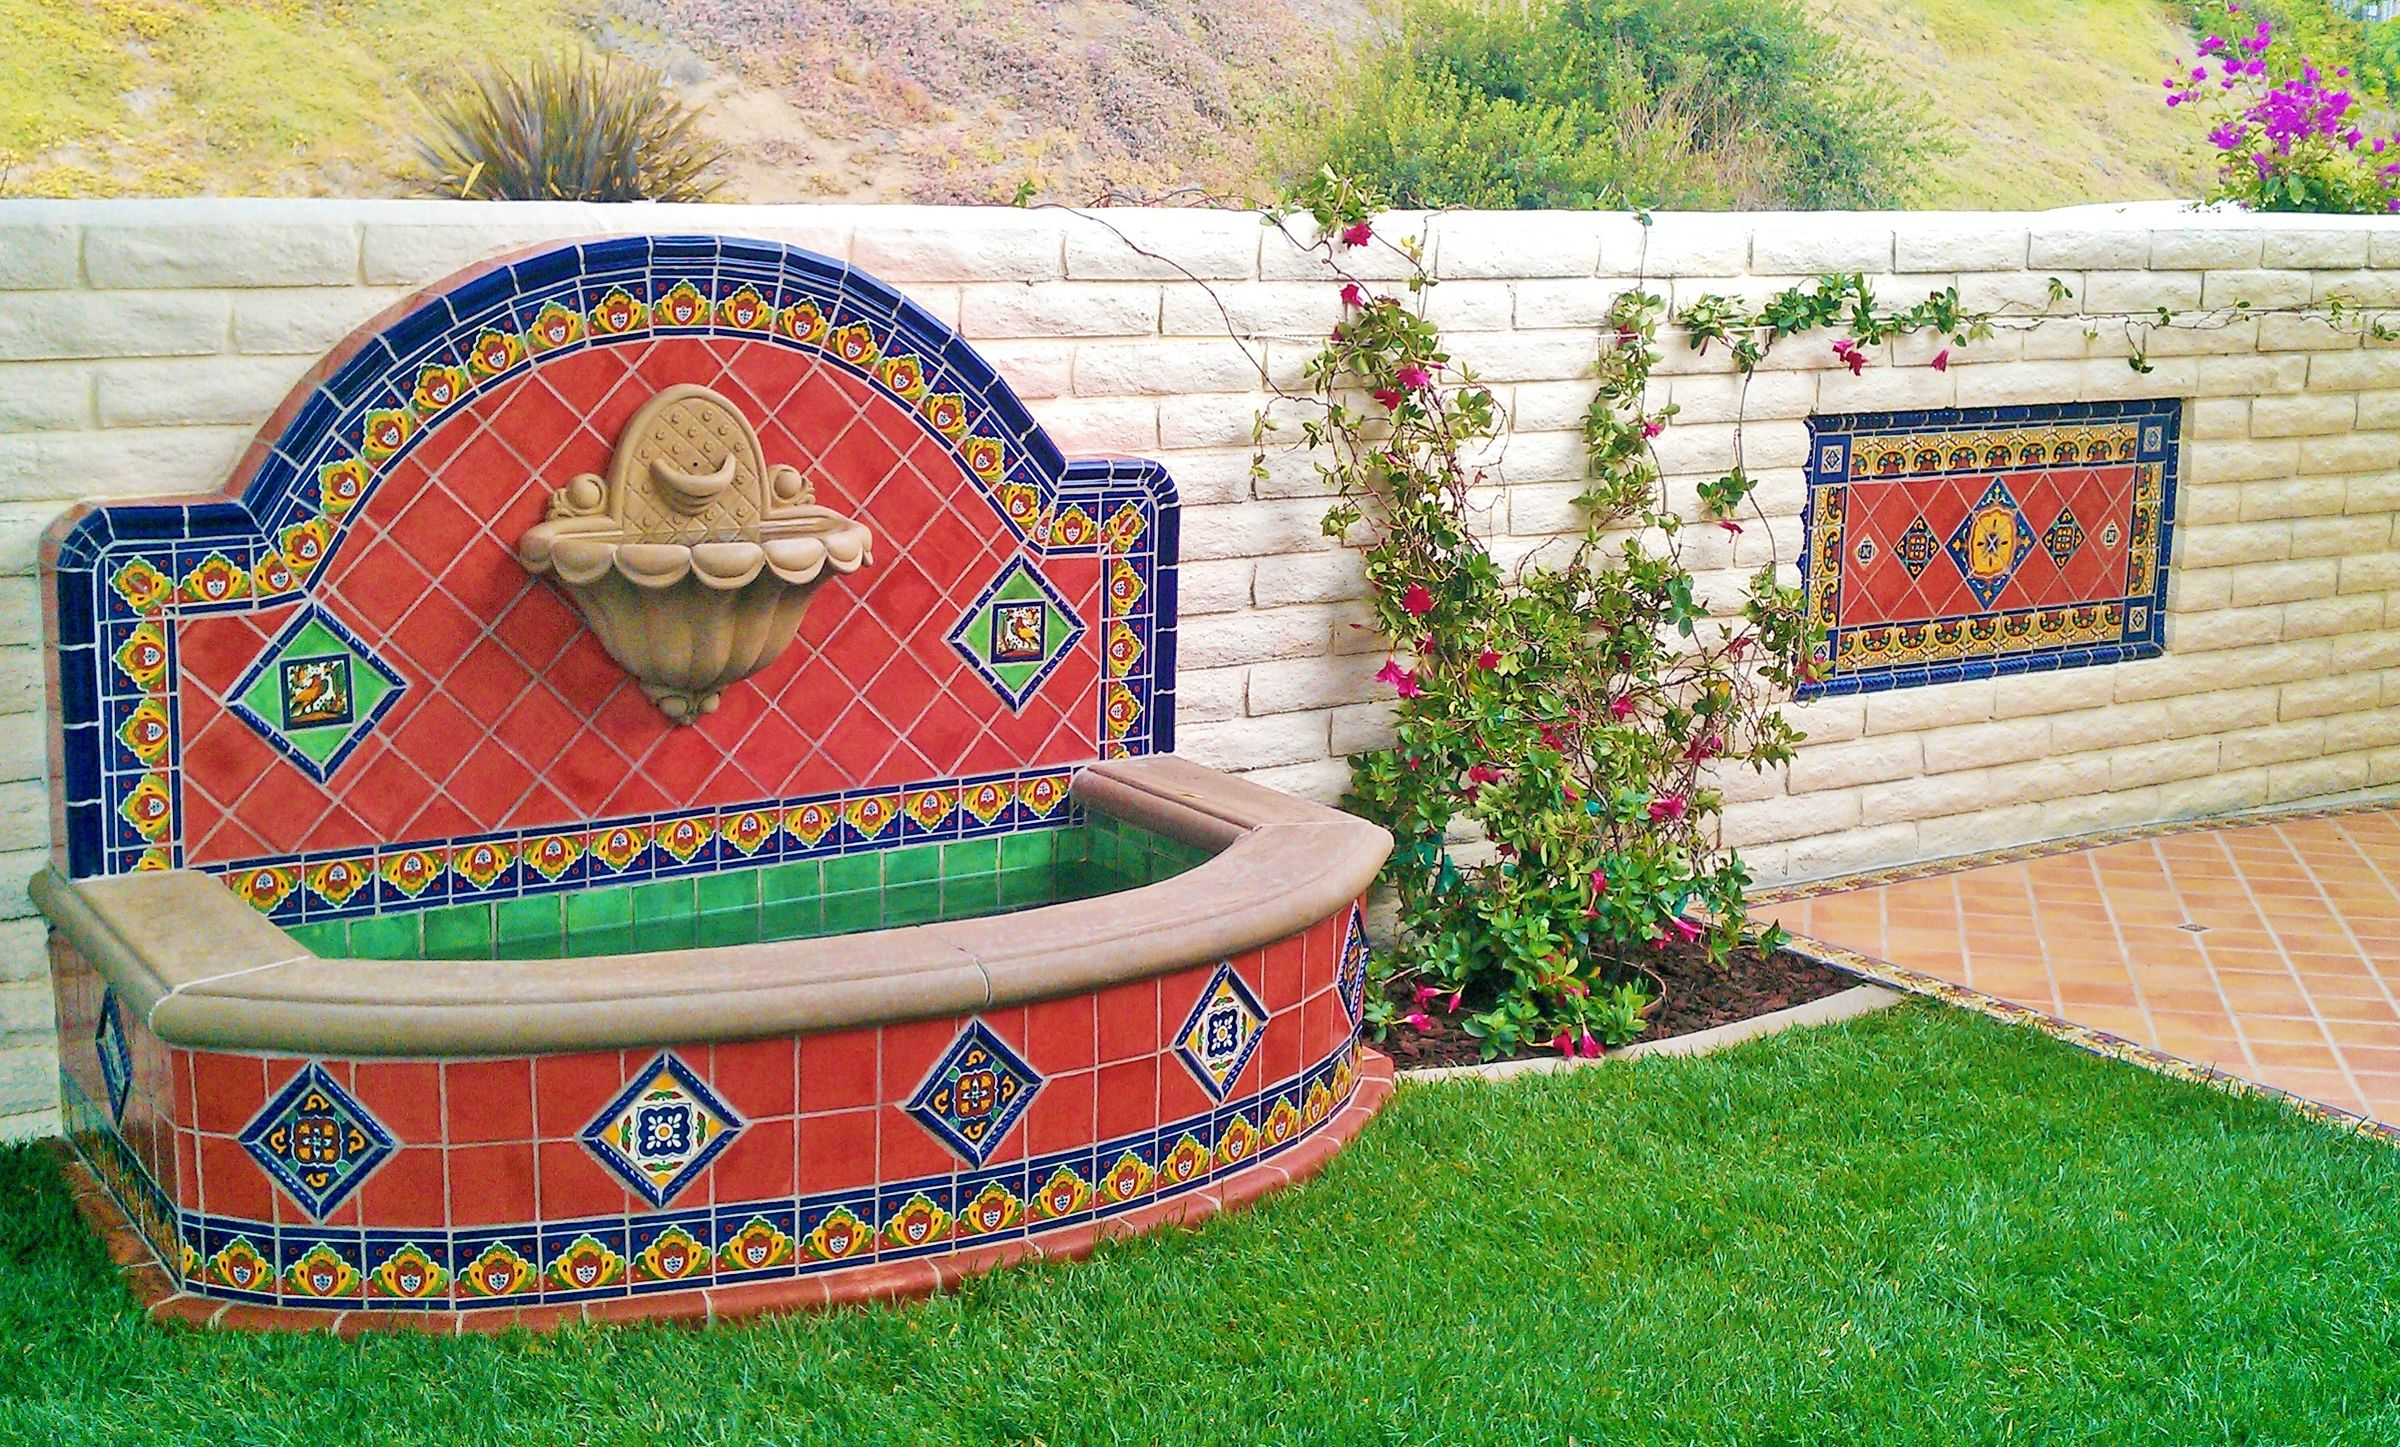 Wall Fountain Using Mexican Tile Design By